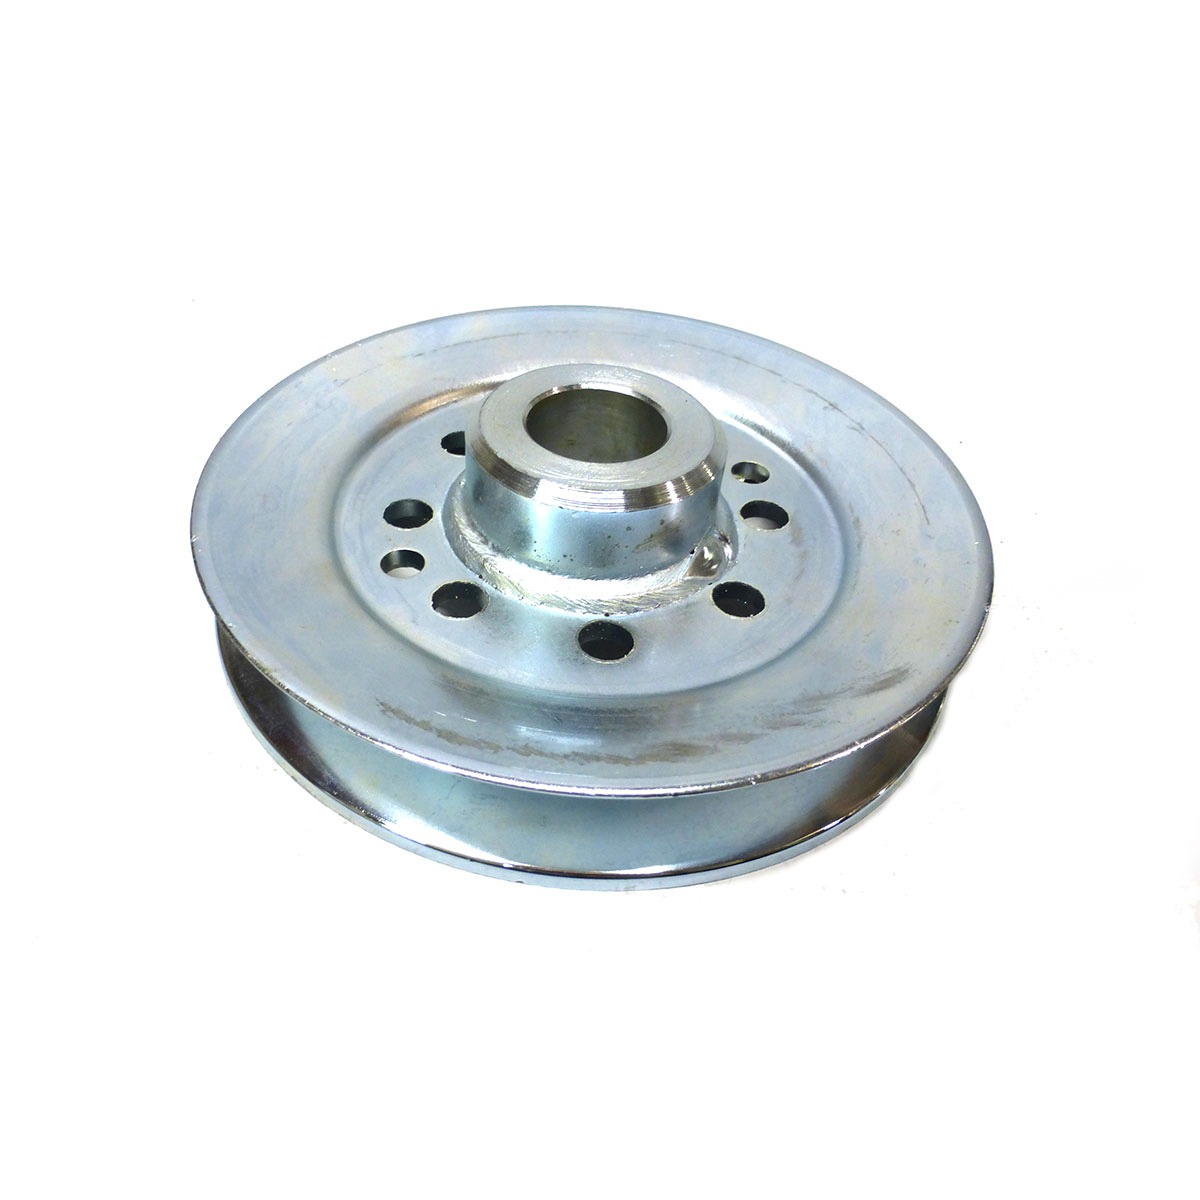 9907525X100S Dixie Chopper Split Pulley 5.25